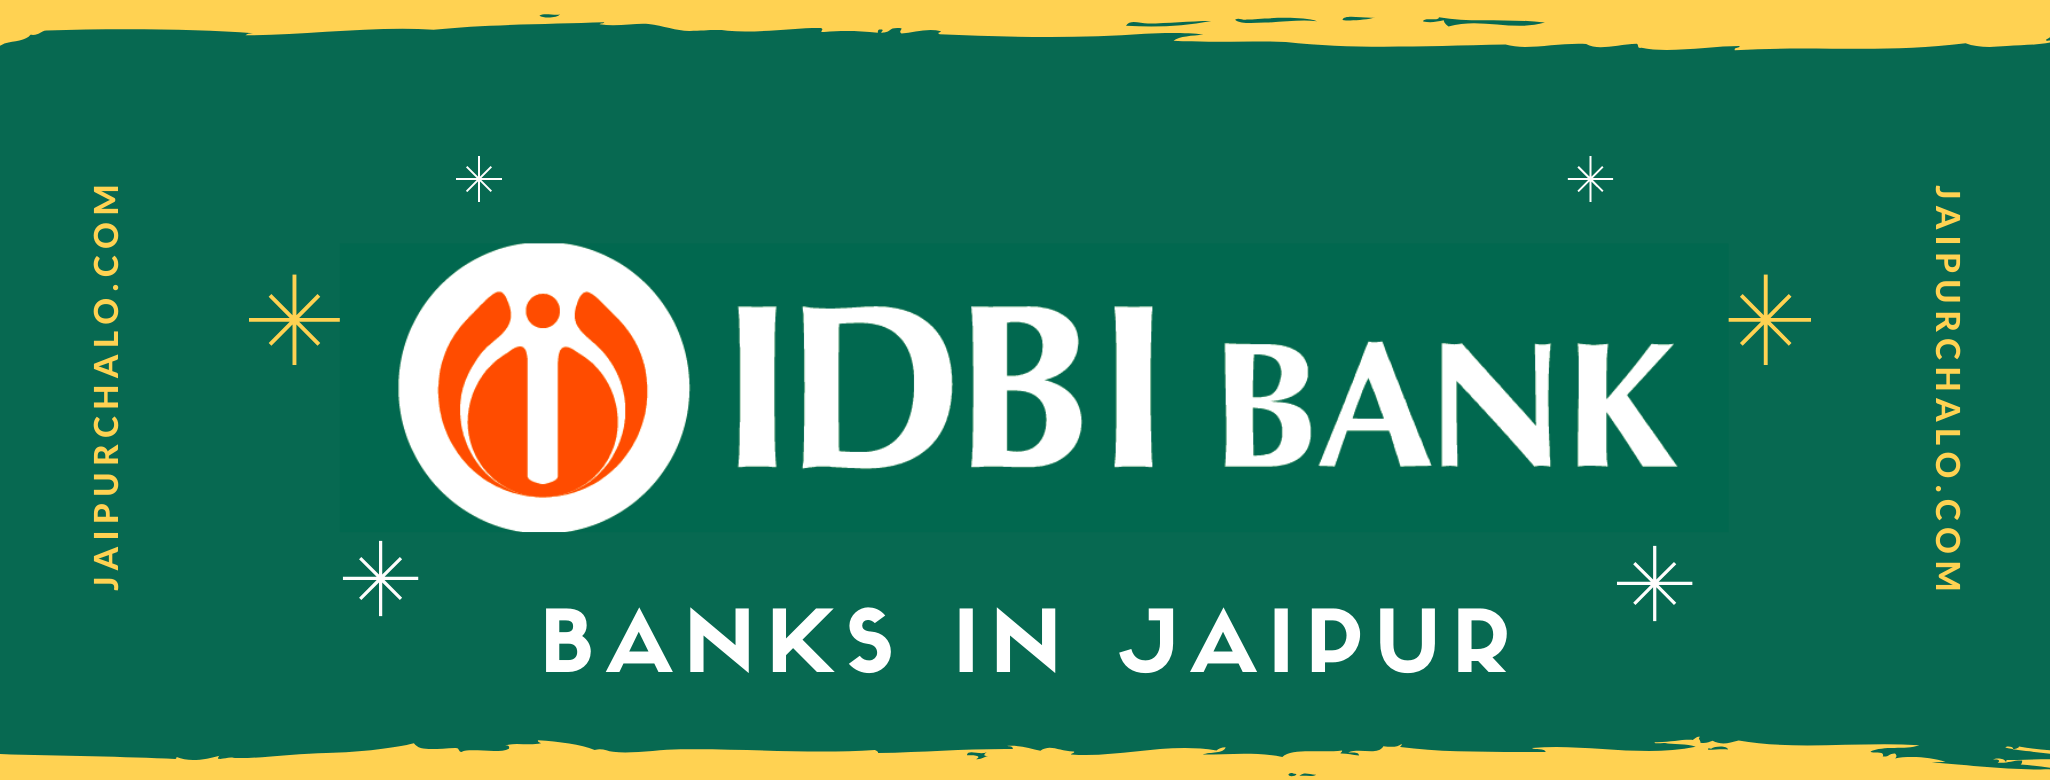 idbi bank in Jaipur